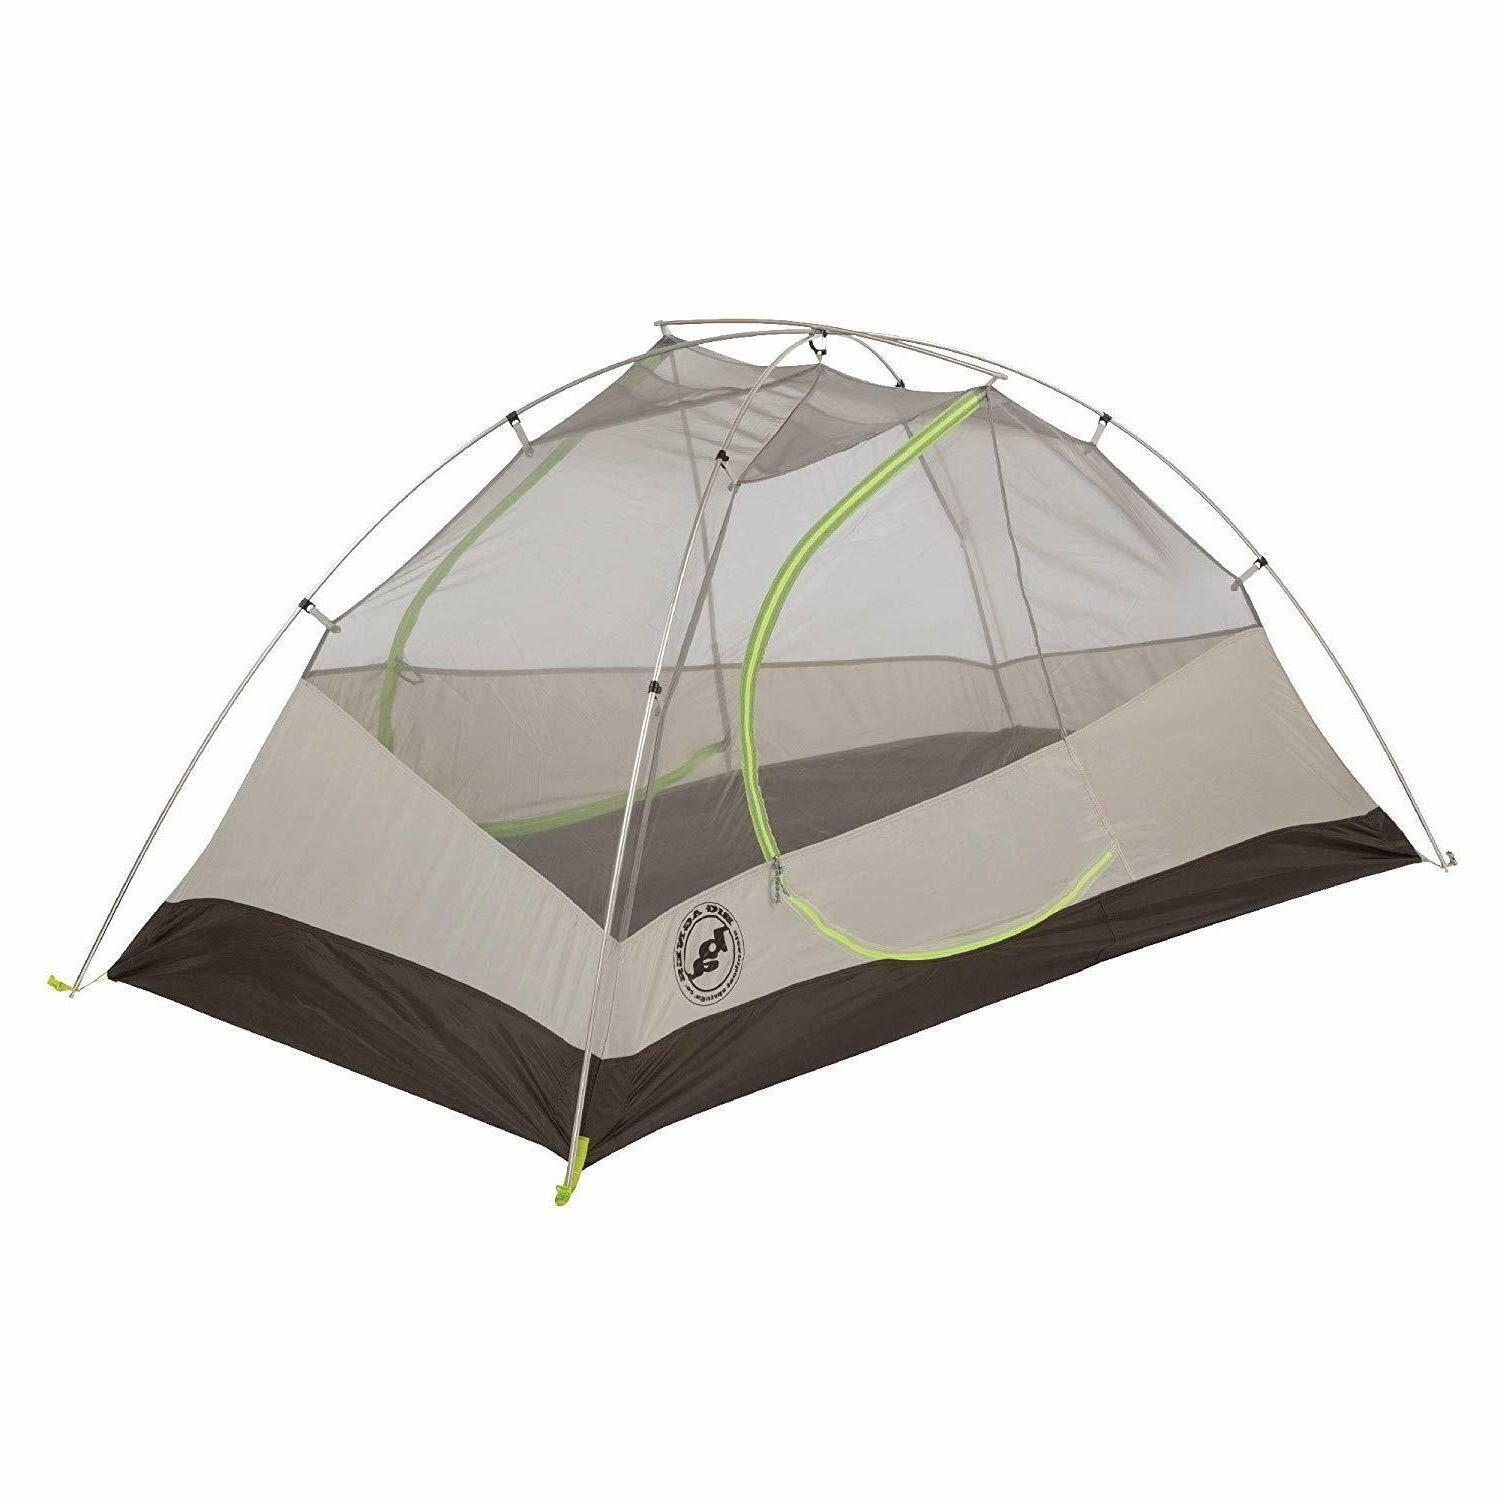 blacktail 2 package includes tent and footprint